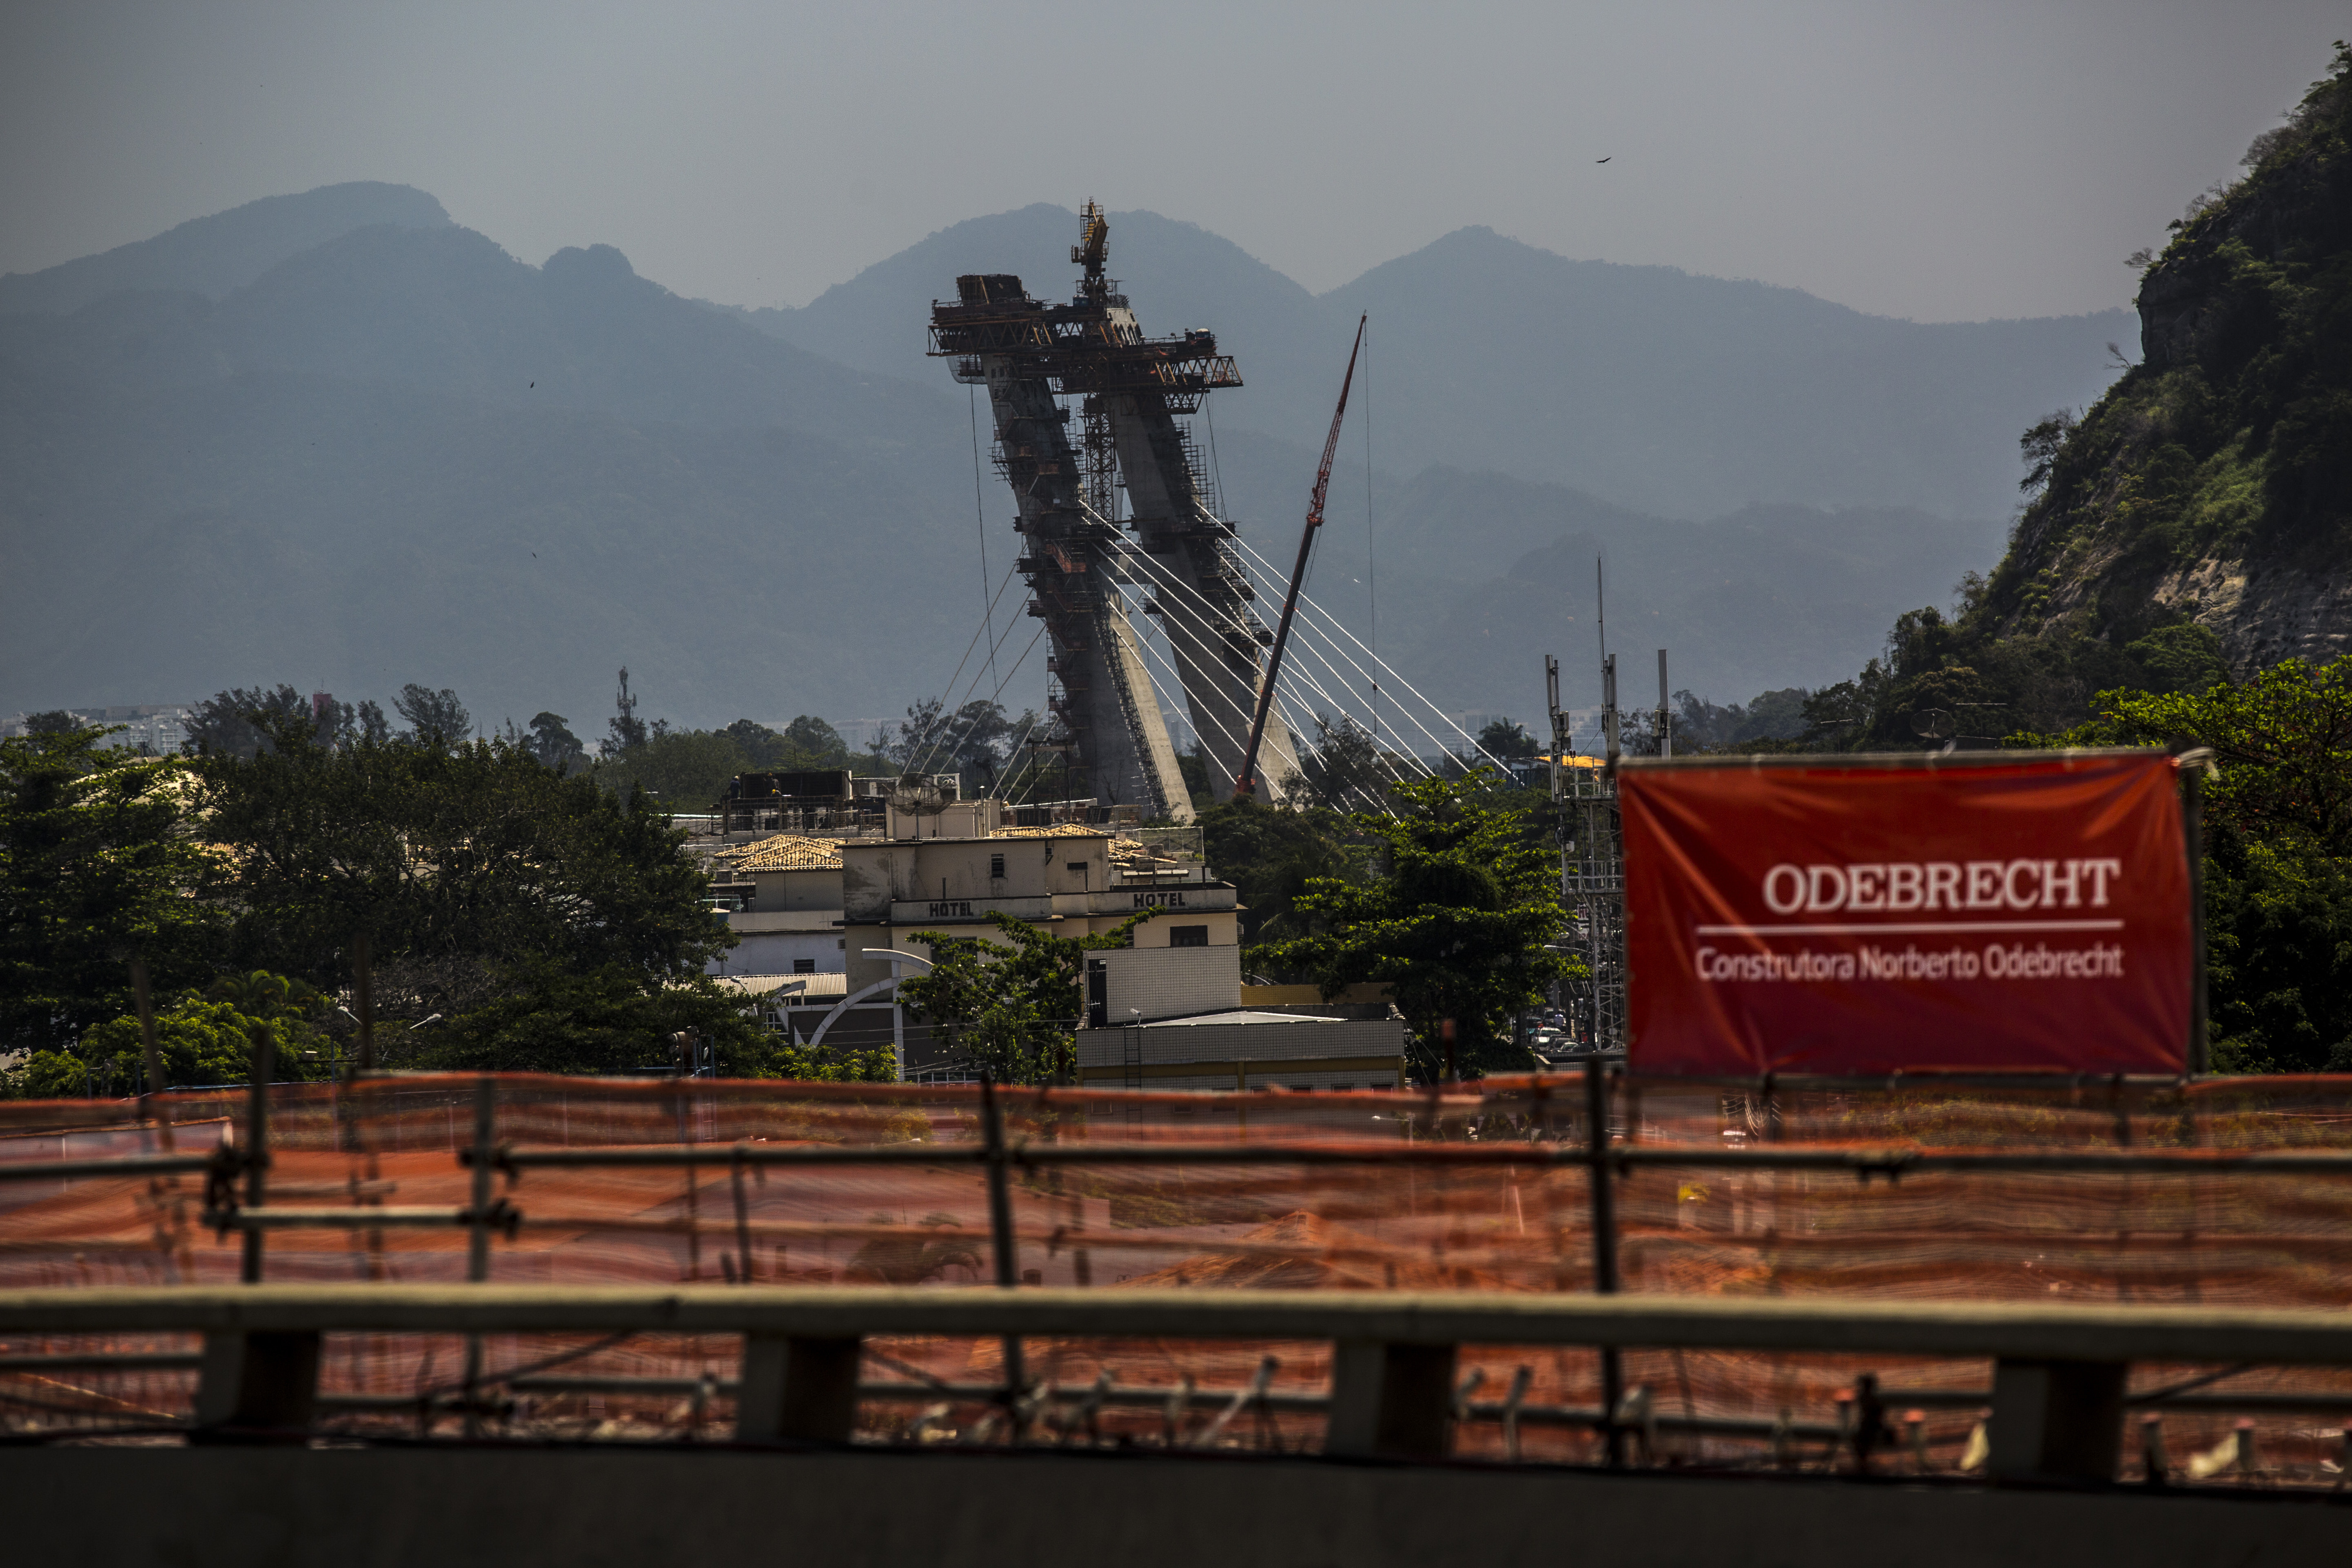 Odebrecht signage is displayed on a construction site in Rio de Janeiro, on Sept. 24, 2015.